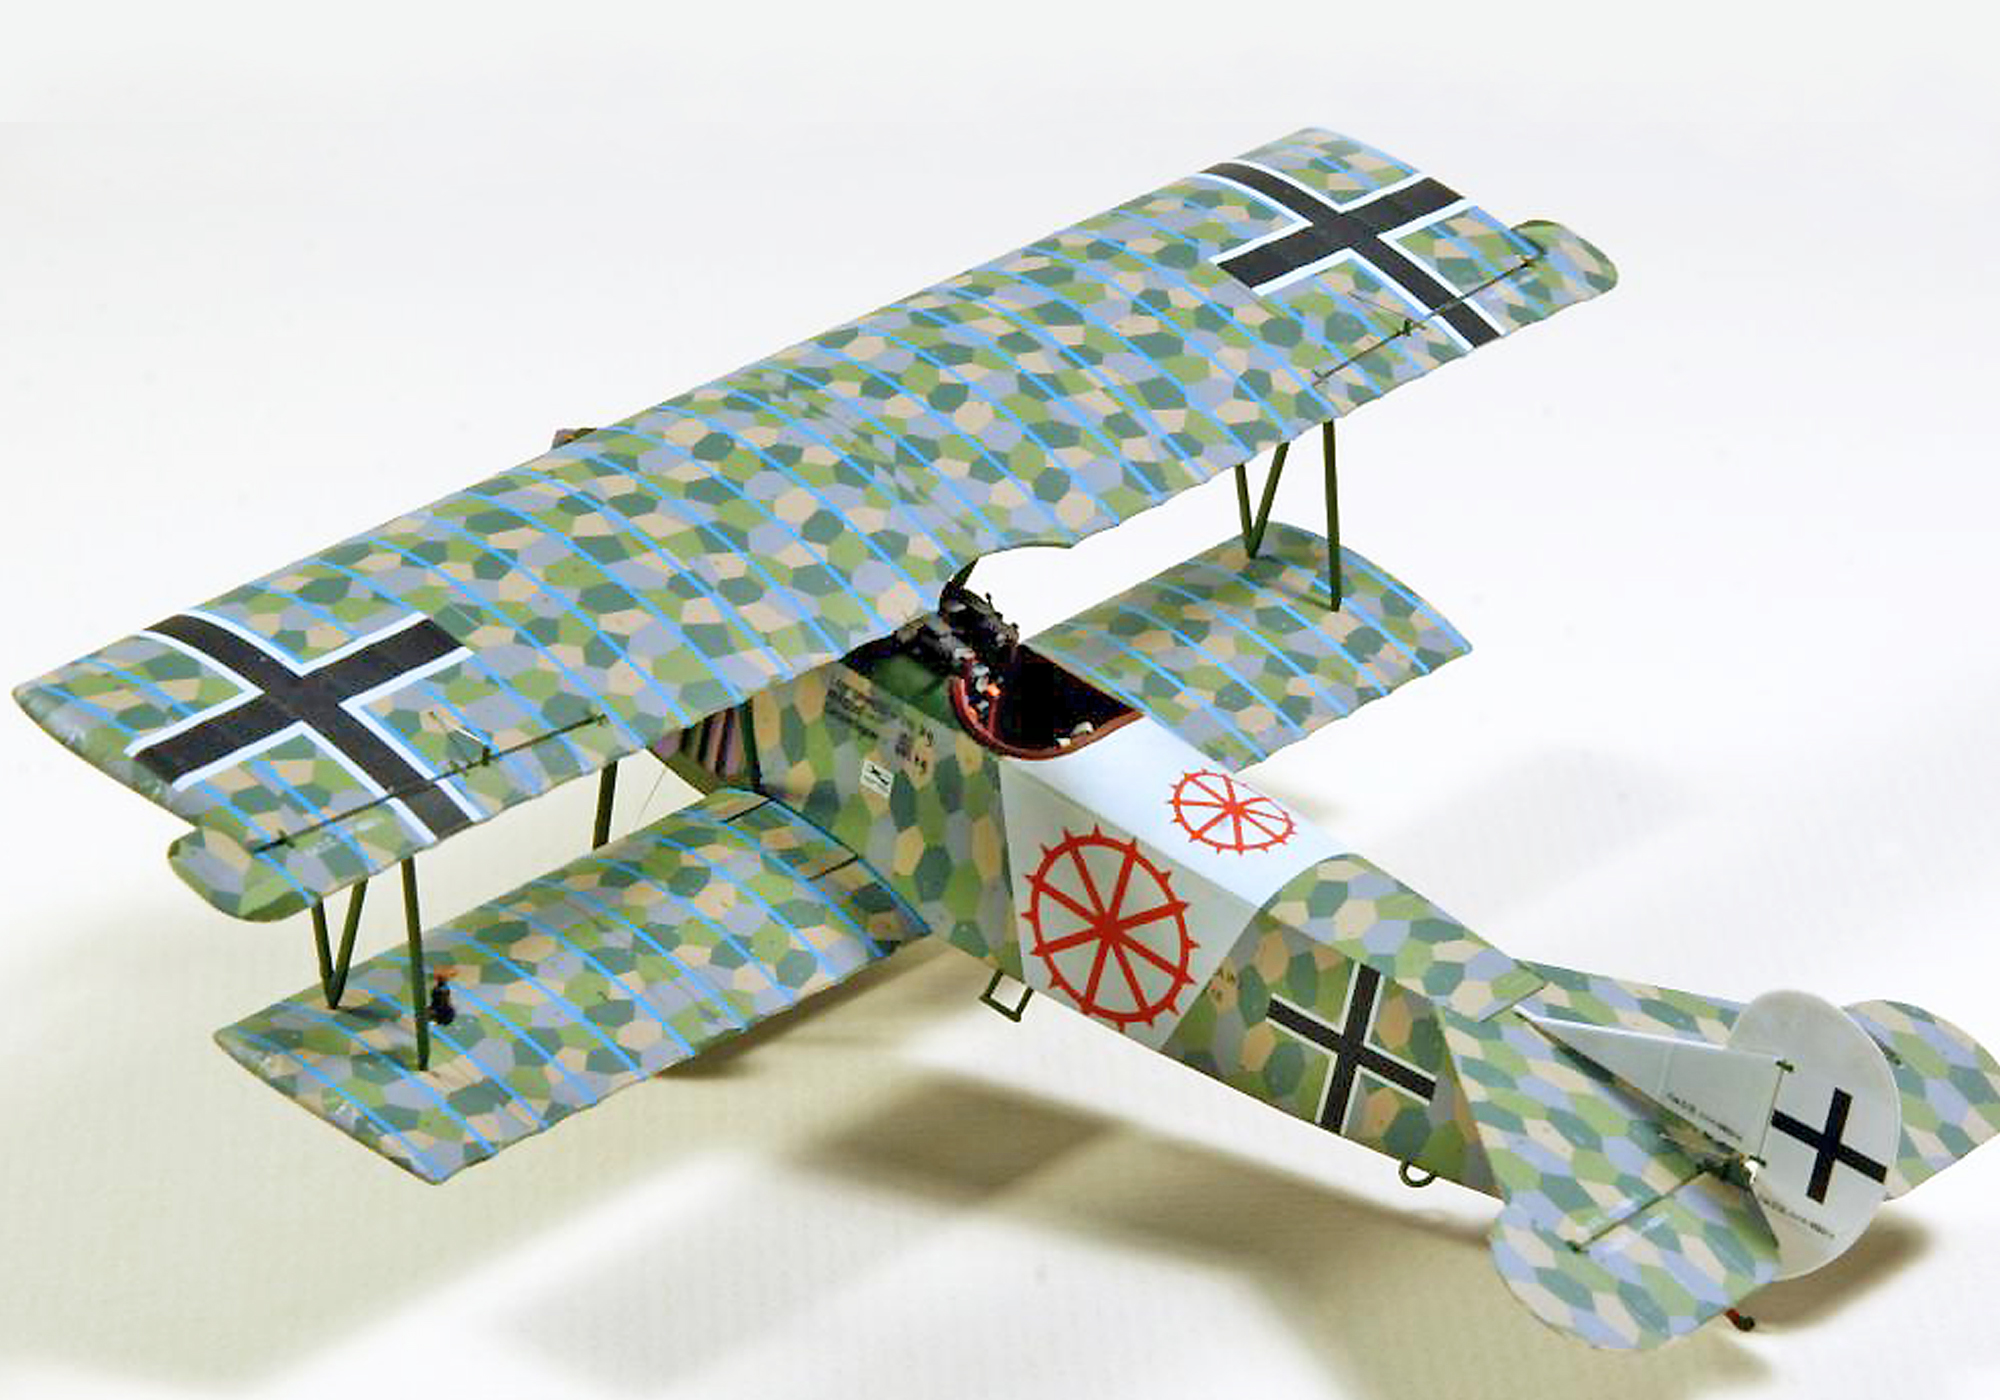 FOKKER DVII WWI FIGHTER - MONOGRAM 1/48 scale